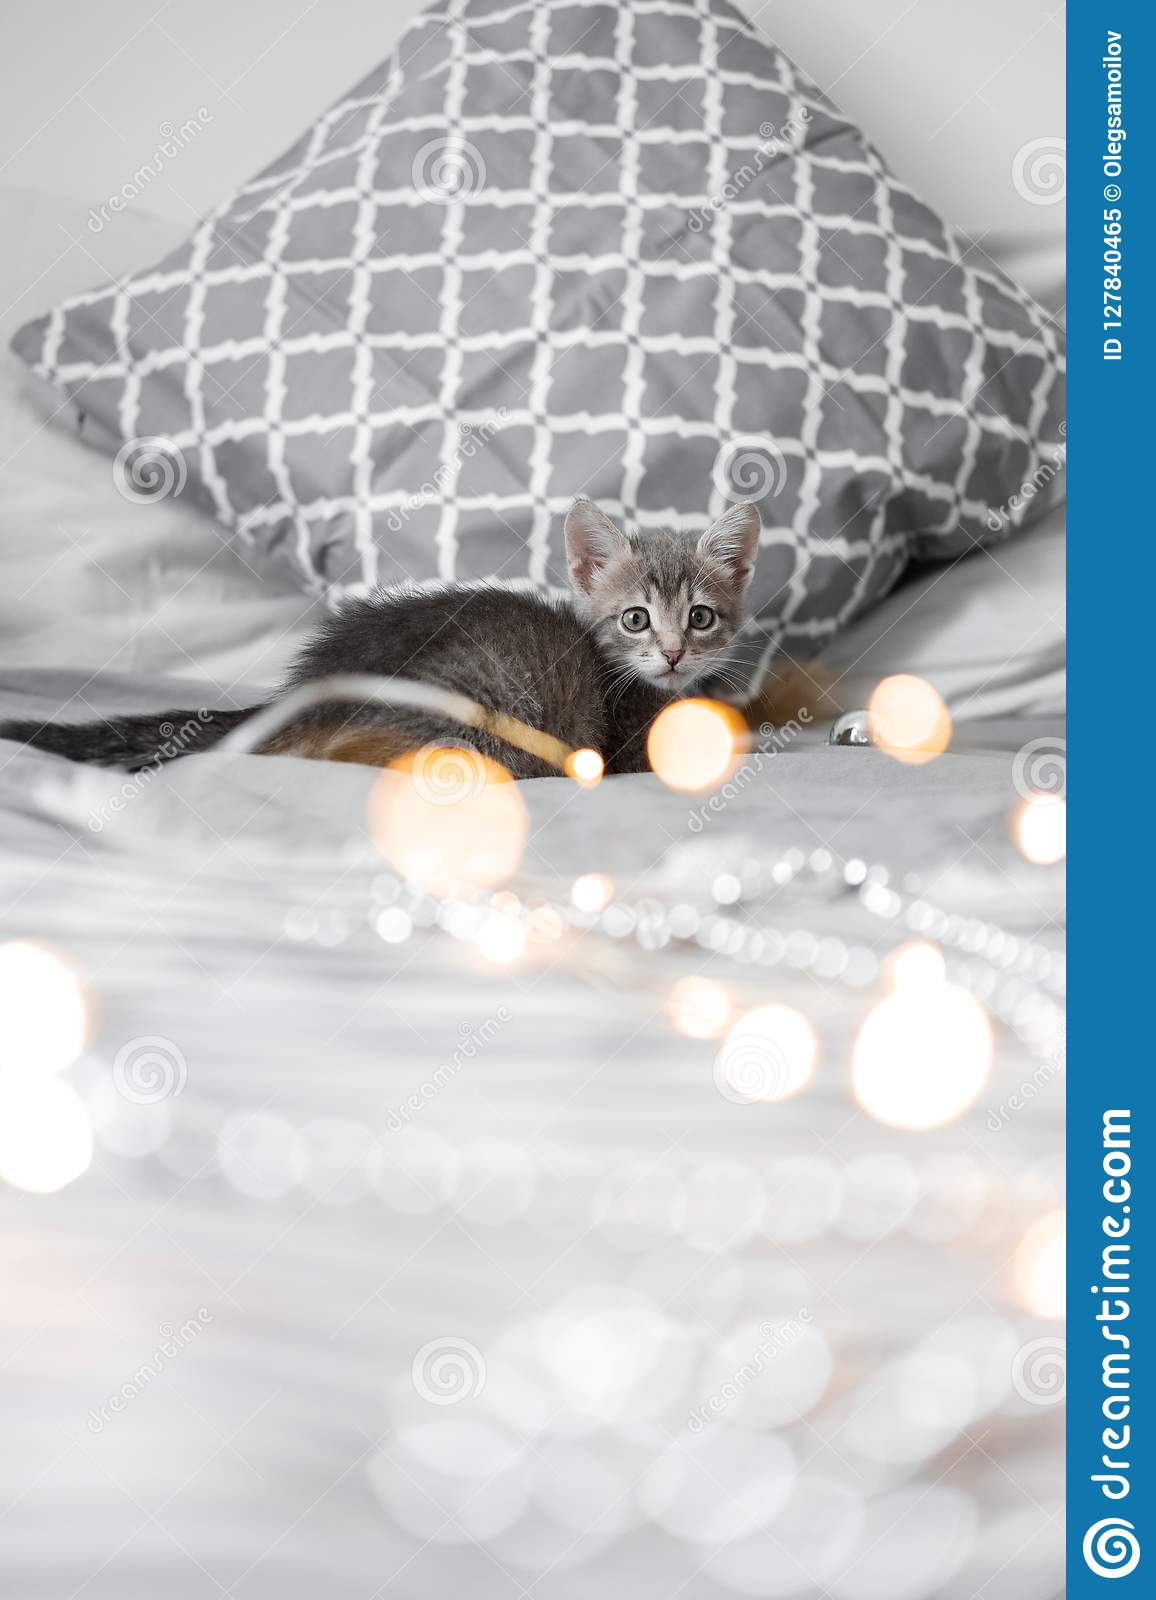 Cute gray kitten playing with Christmas toys on a bokeh background